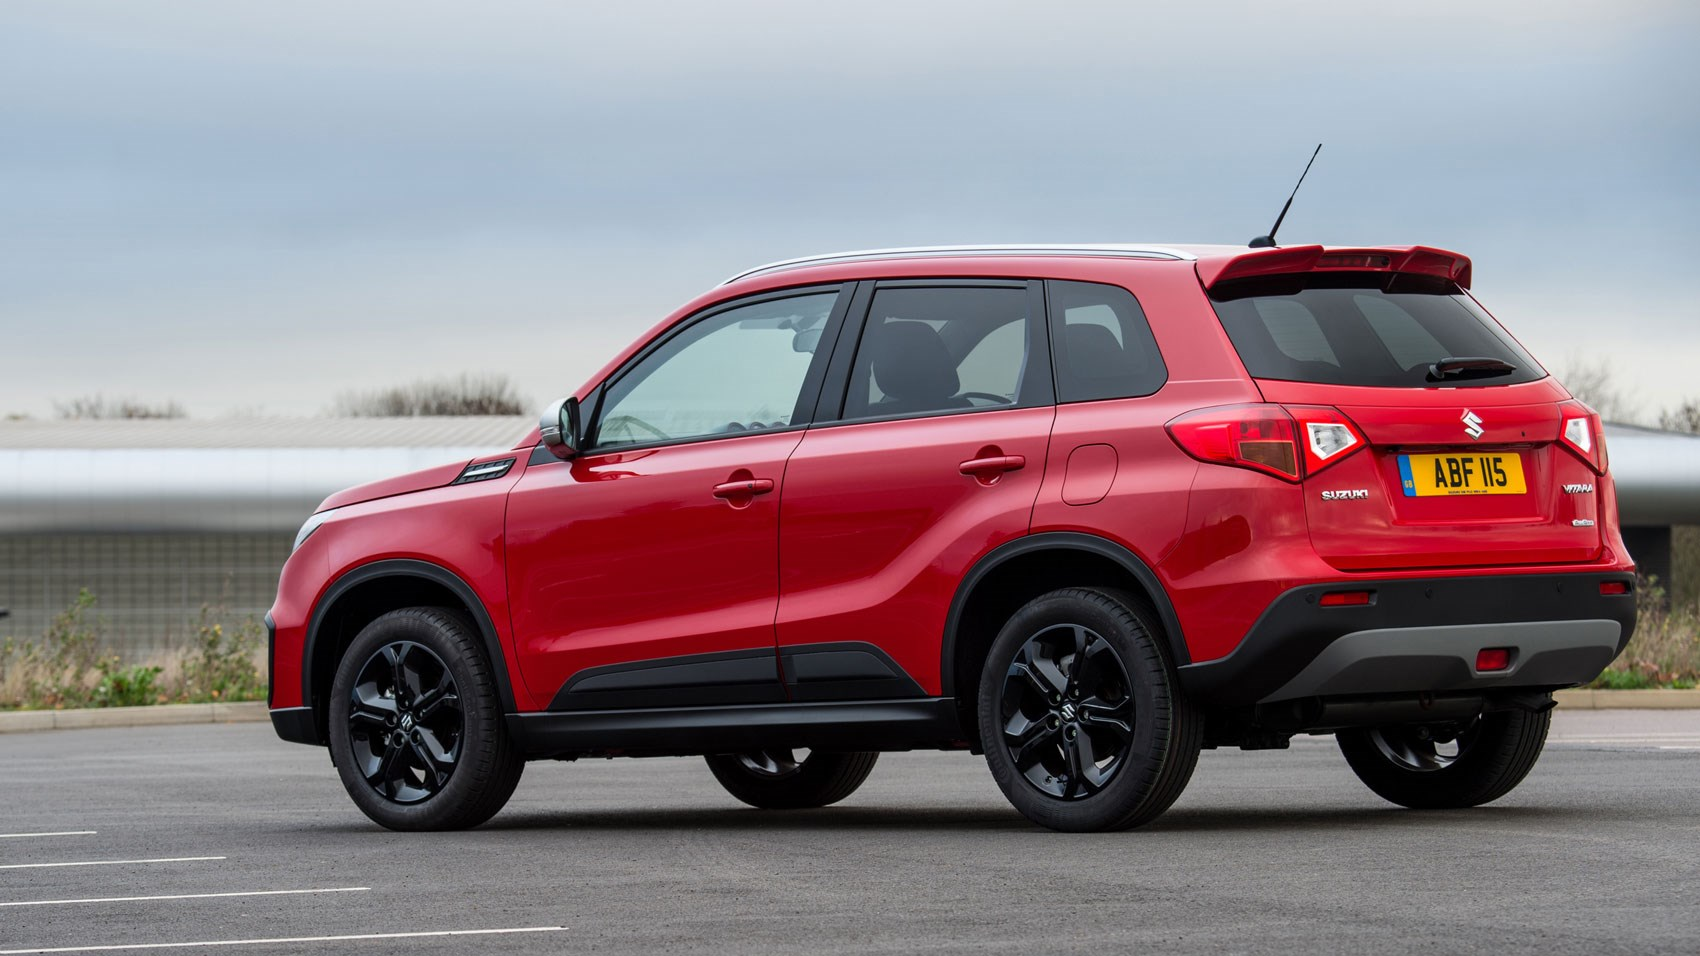 2019 Suzuki Vitara Review, Price >> Suzuki Vitara S (2018) review: simple 4x4 pleasure | CAR Magazine